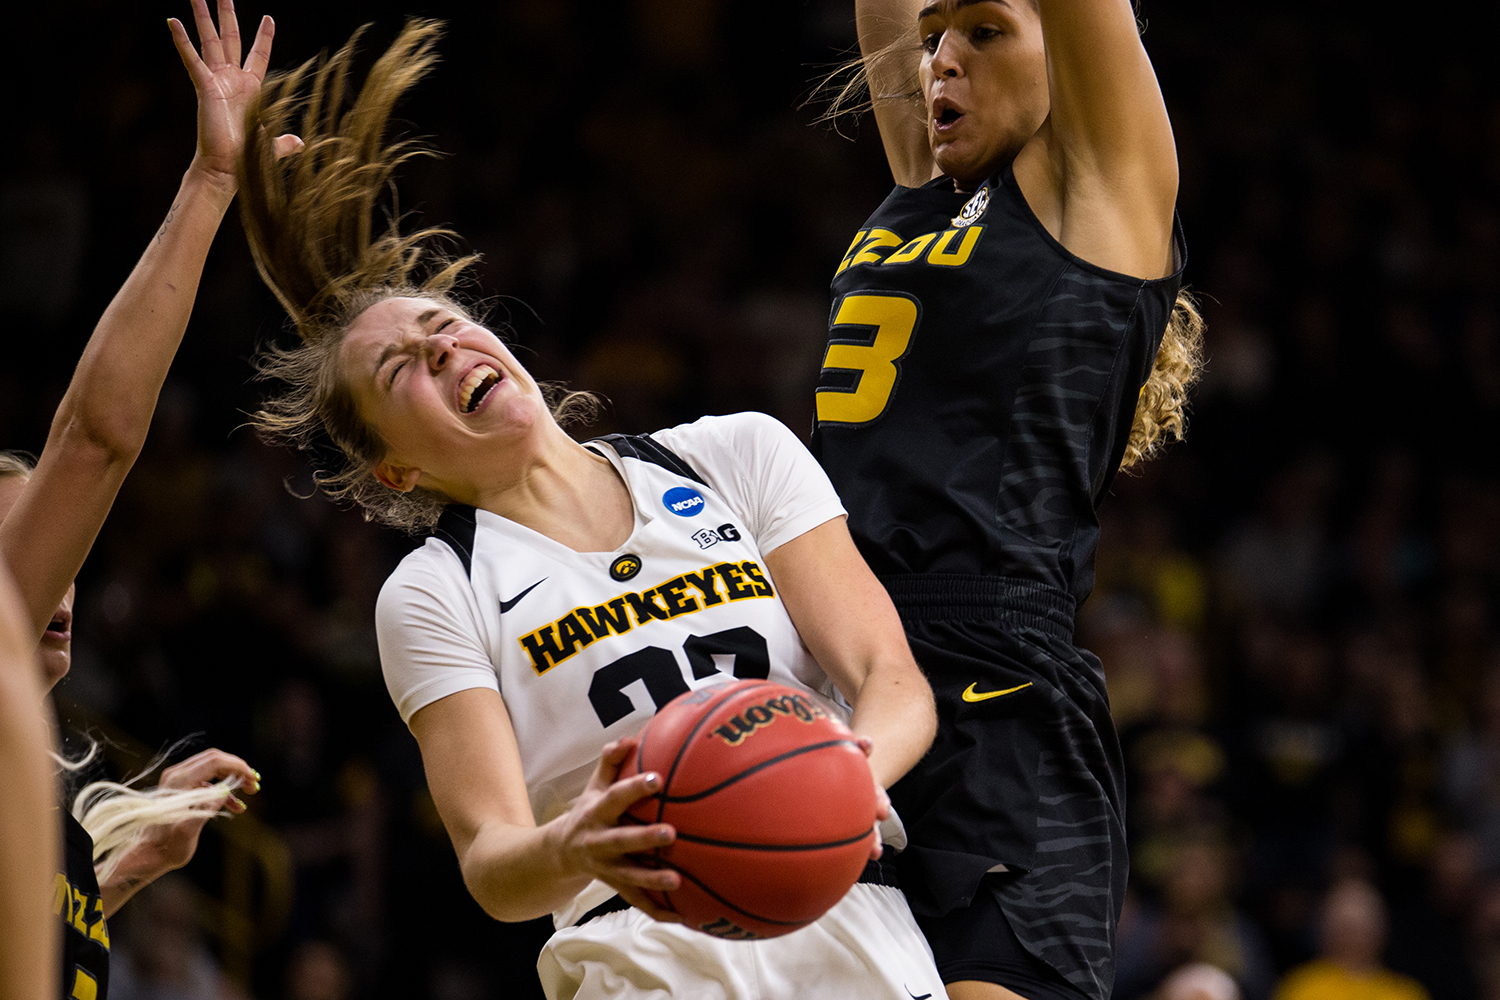 Iowa+guard+Kathleen+Doyle+%2822%29+gets+denied+the+basket+during+the+Iowa%2FMissouri+NCAA+Tournament+second+round+women%E2%80%99s+basketball+game+in+Carver-Hawkeye+Arena+in+Iowa+City%2C+Iowa+on+Sunday%2C+March+24%2C+2019.+The+Hawkeyes+defeated+the+Tigers+68-52.